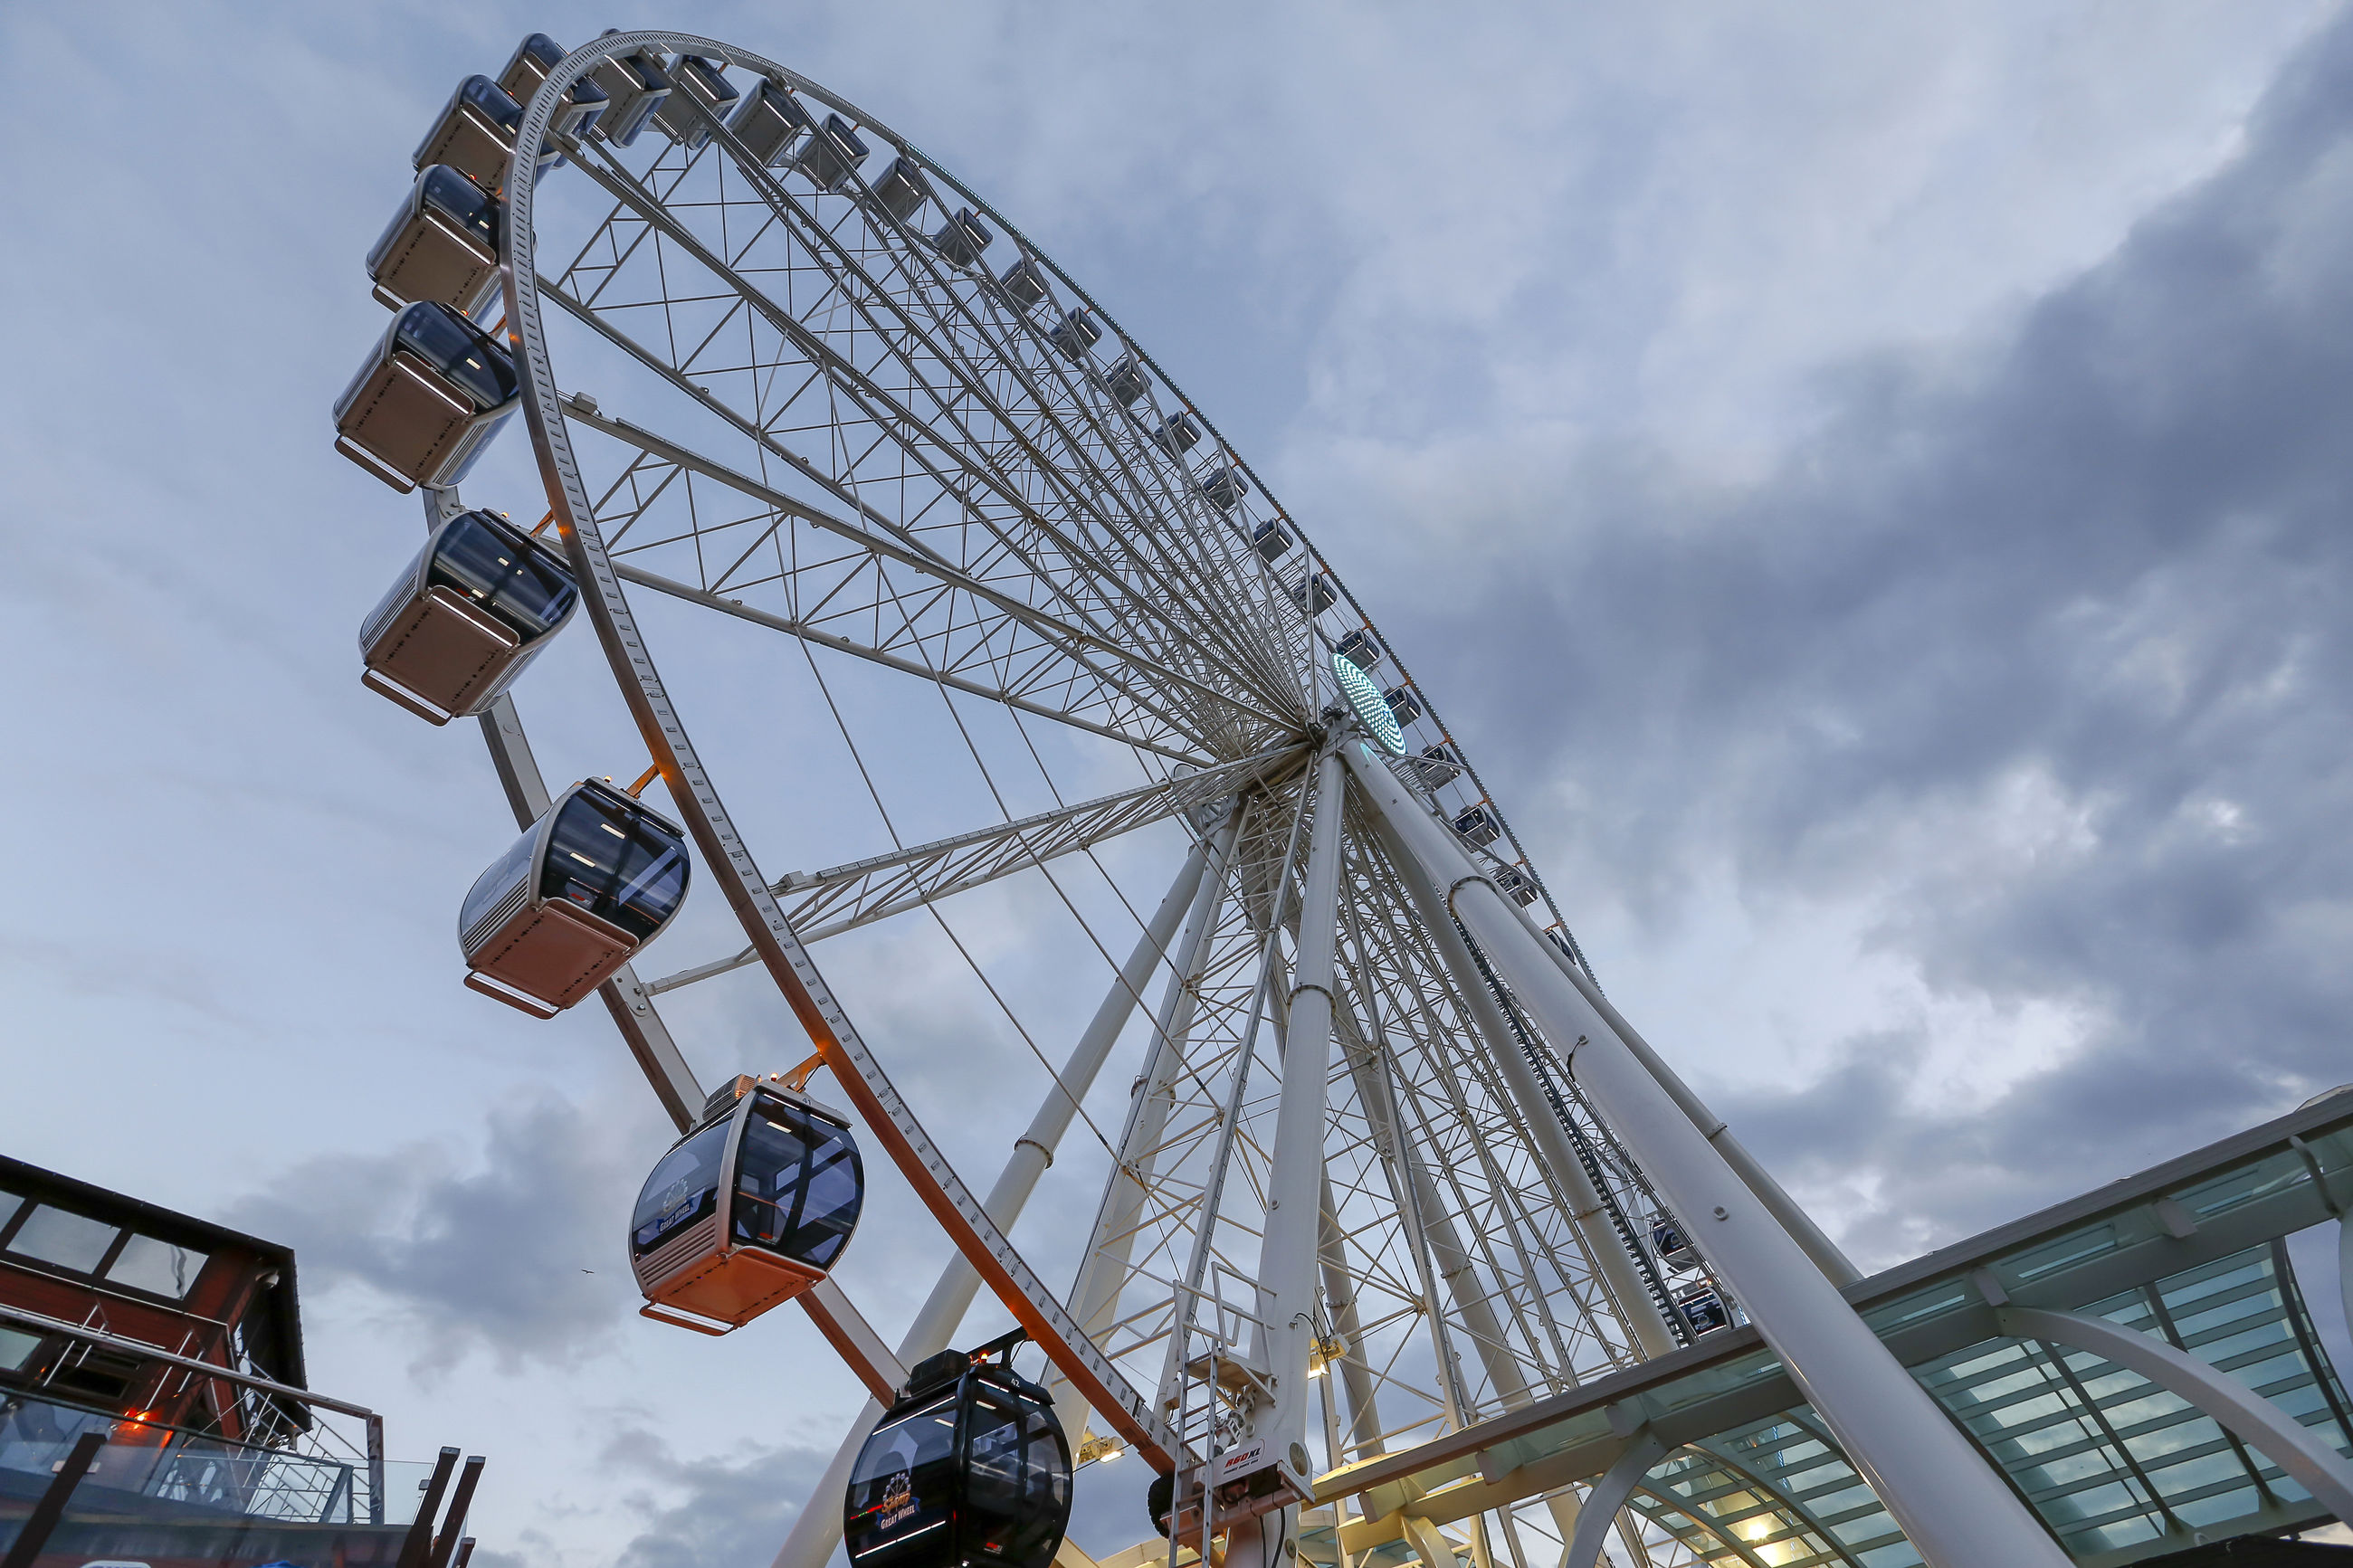 LOW ANGLE VIEW OF AMUSEMENT PARK AGAINST SKY